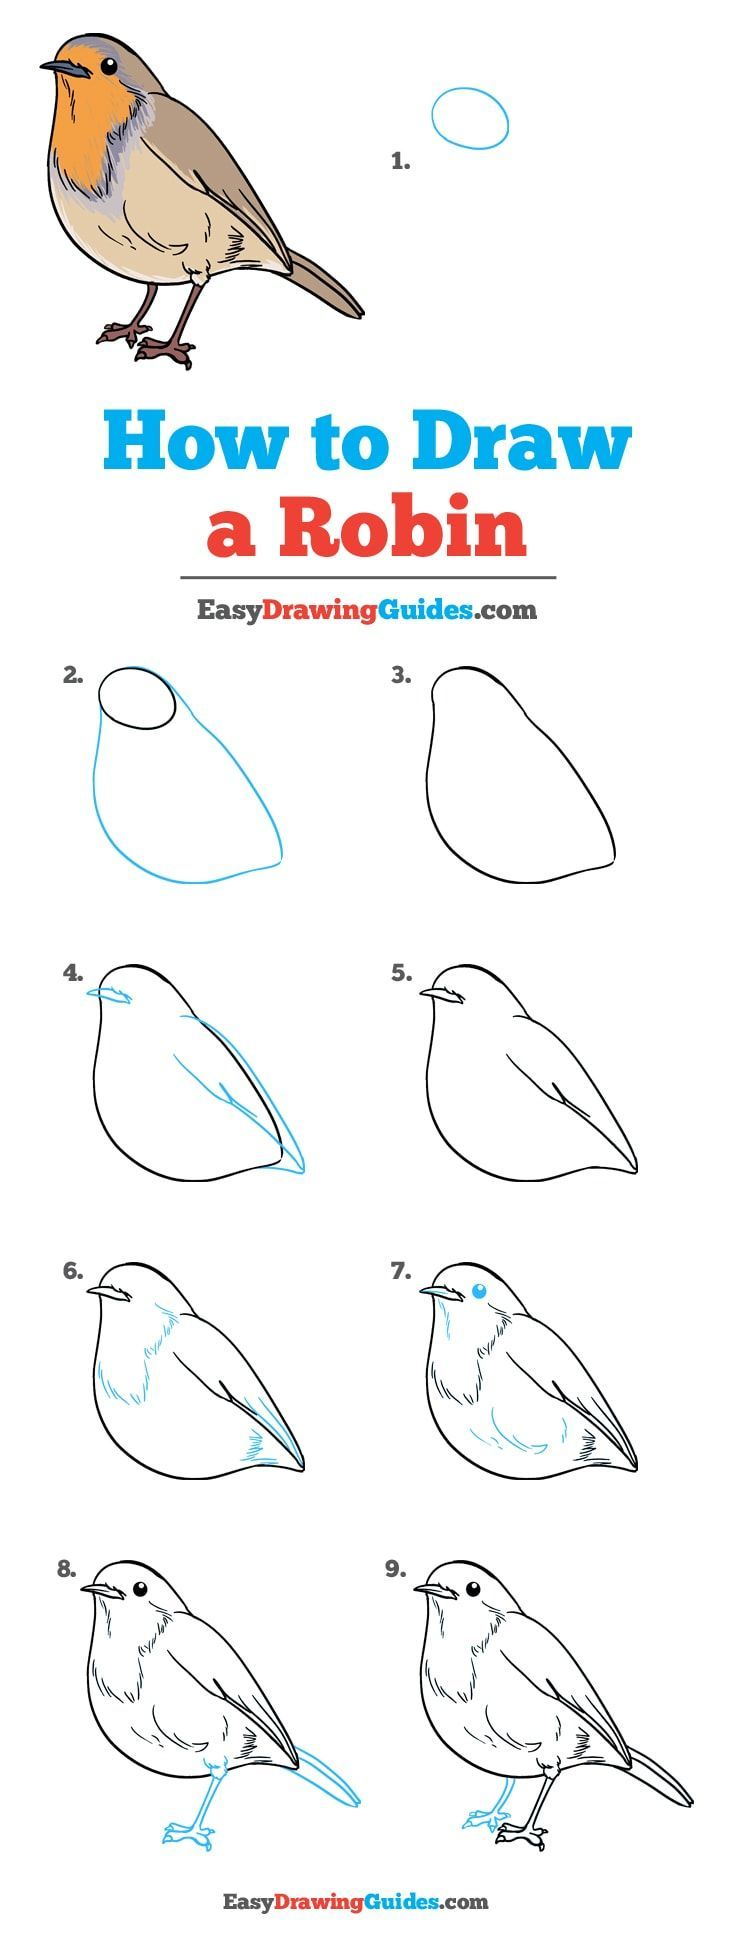 how to draw a robin really easy drawing tutorial is part of Drawings - How to Draw a Robin  Really Easy Drawing Tutorial Easyart Sketches